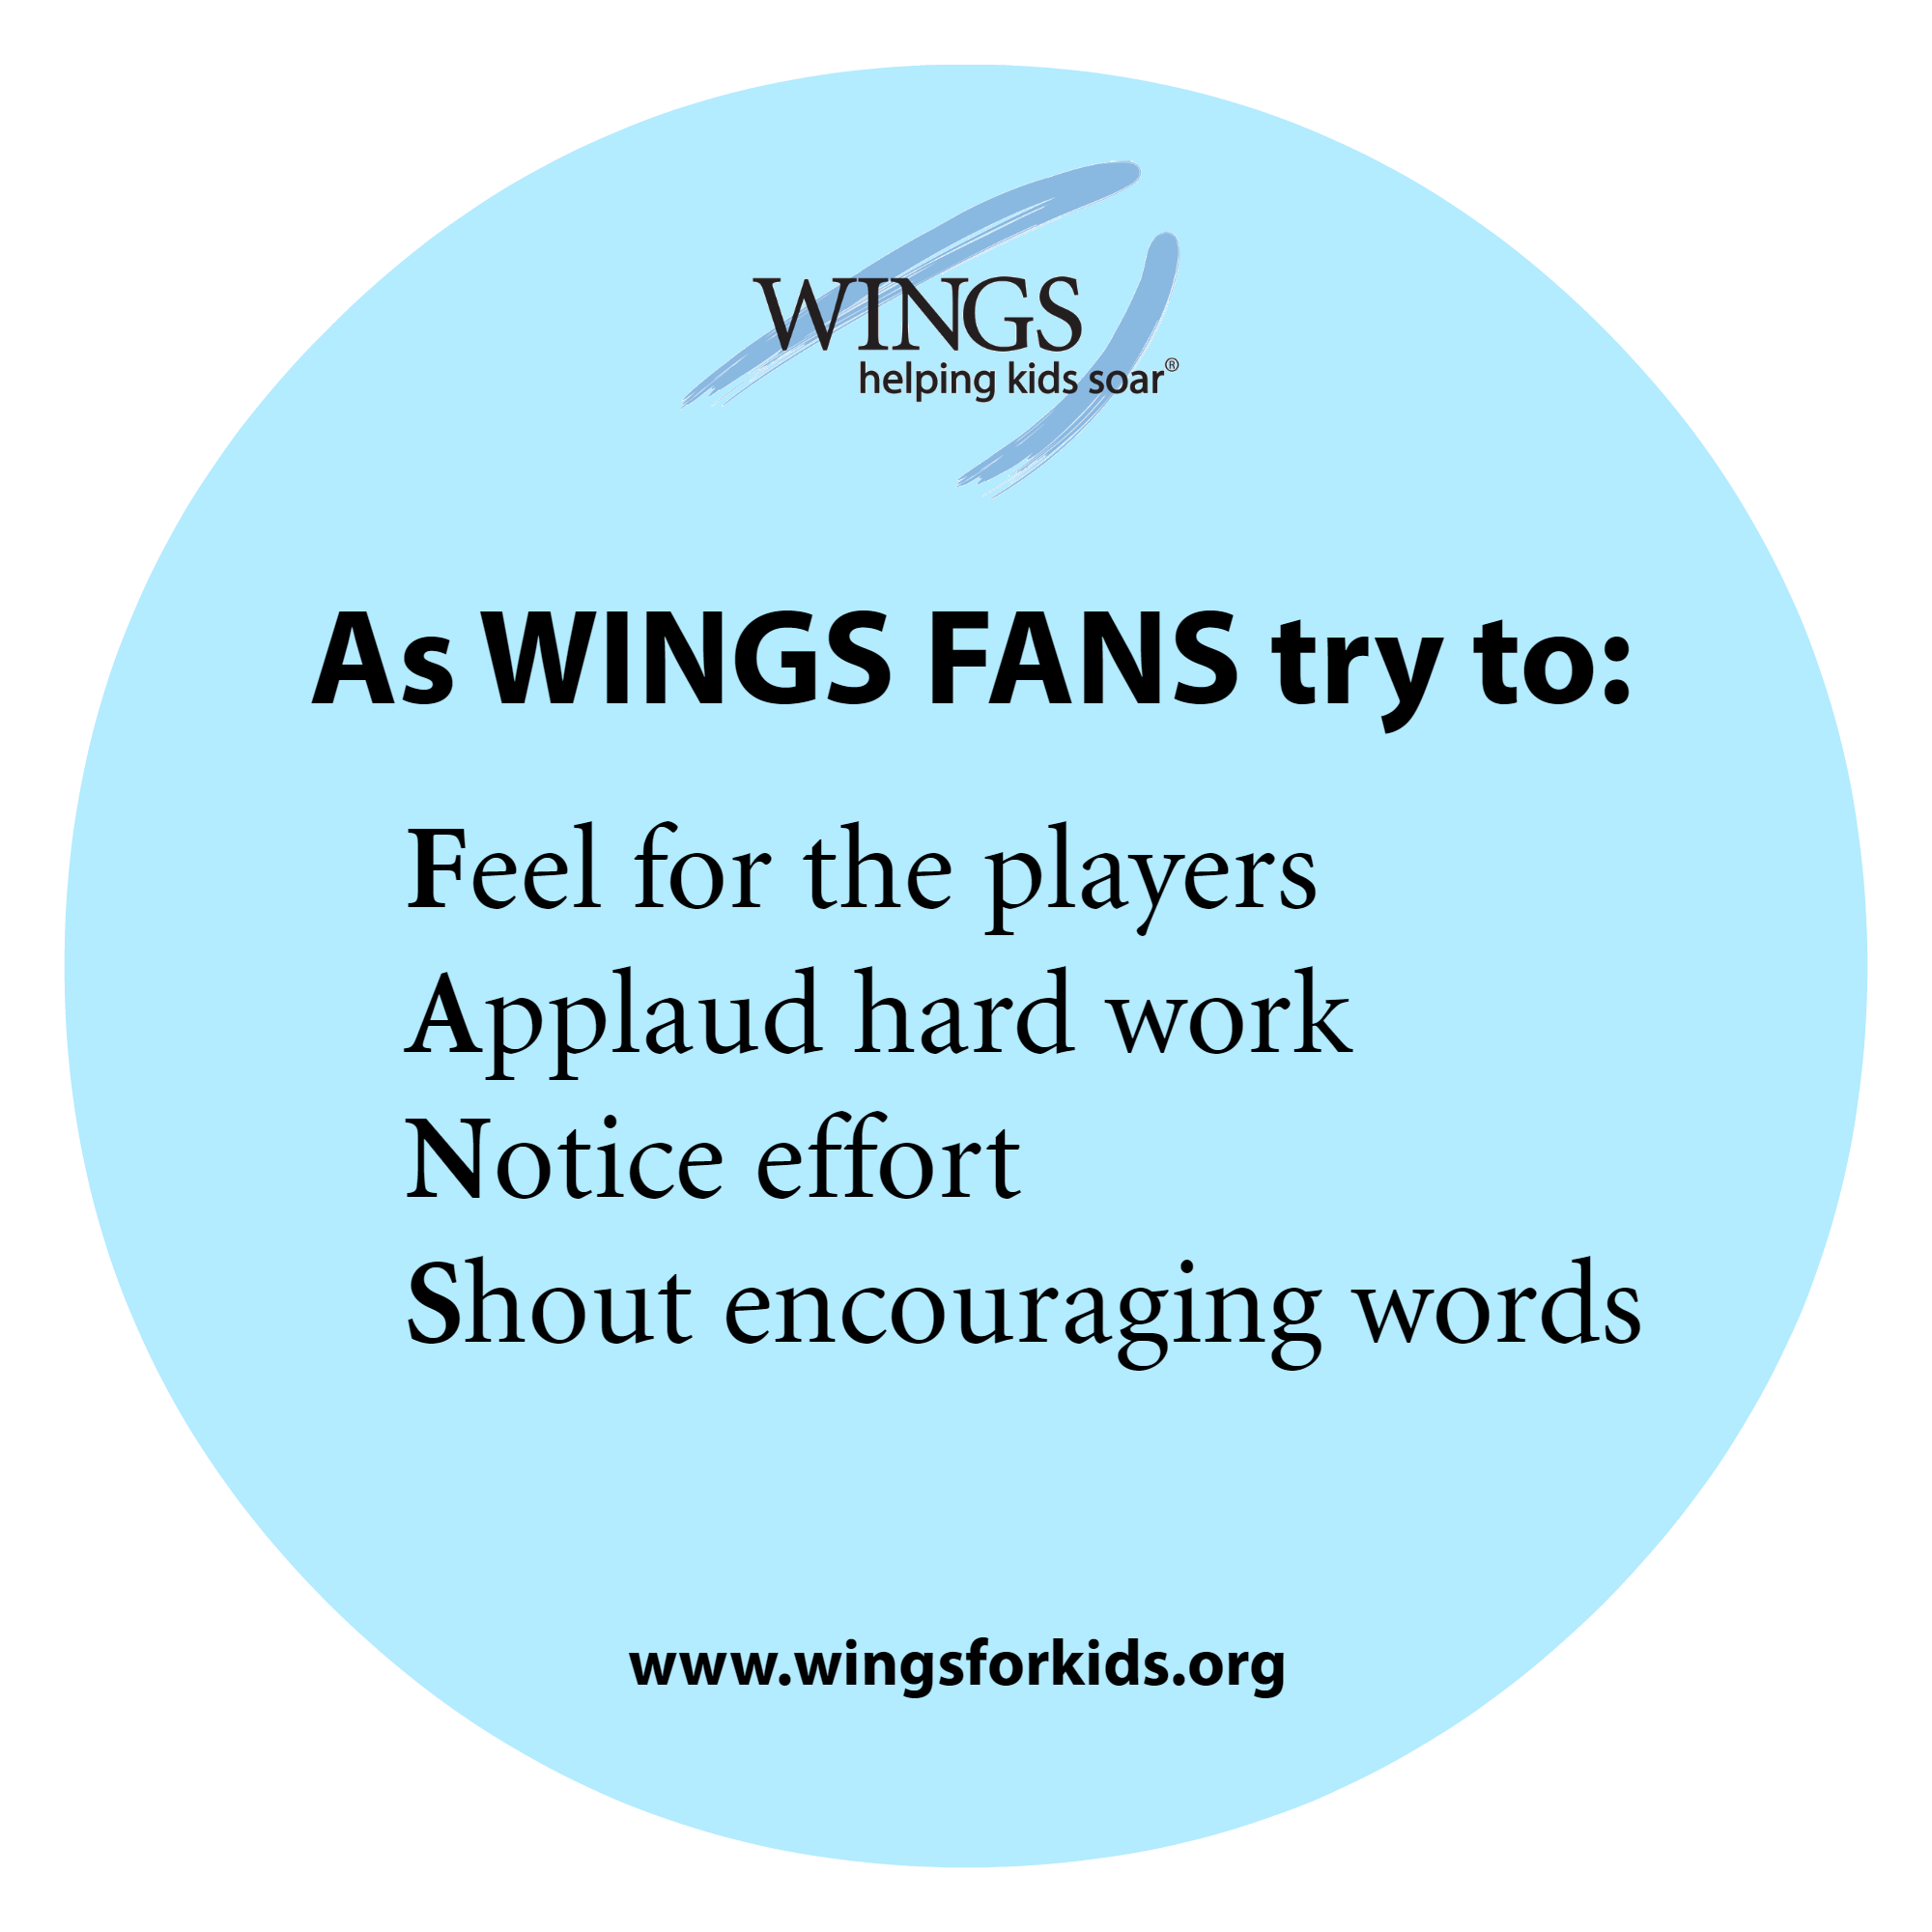 wings_fans.png